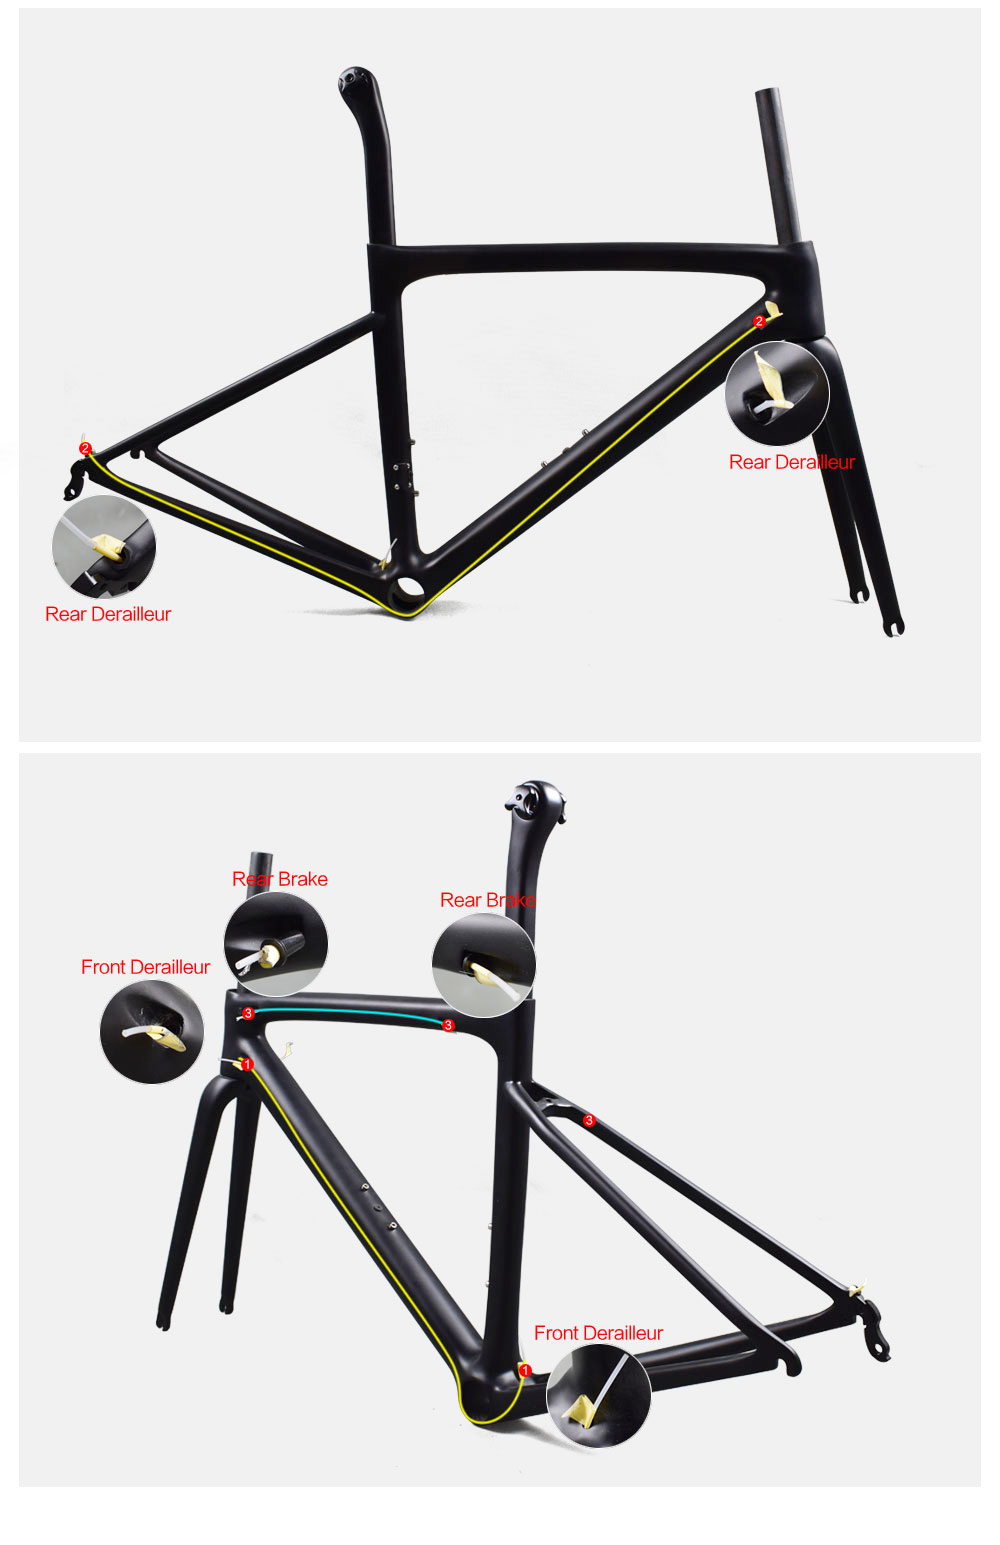 Rinasclta 2019 lightweight carbon road frame cable route guide